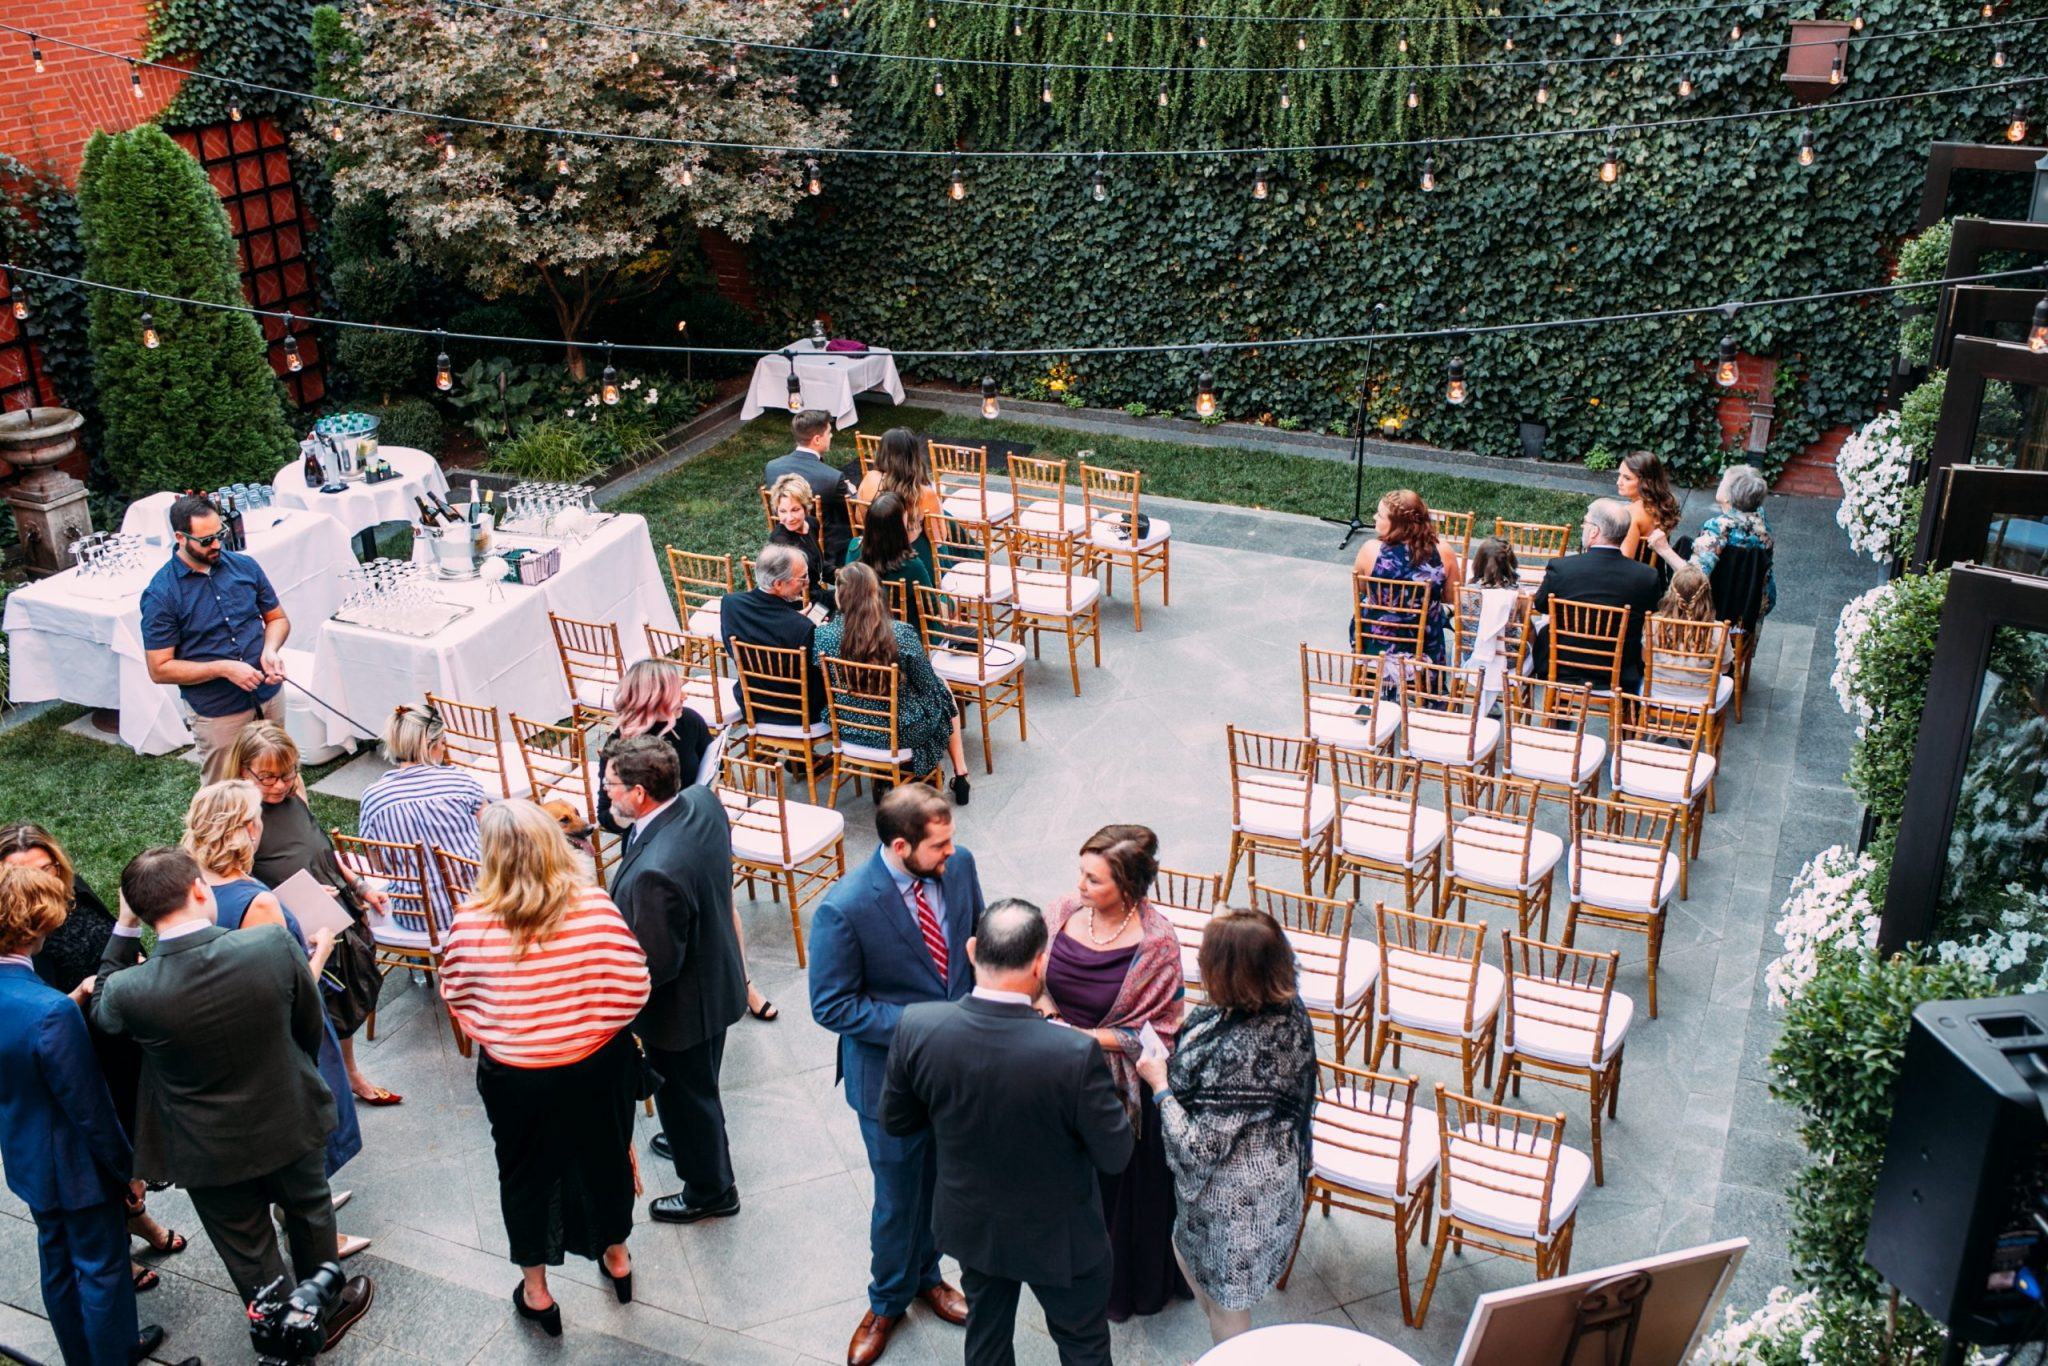 Outdoor wedding ceremony at The Ivy Hotel.